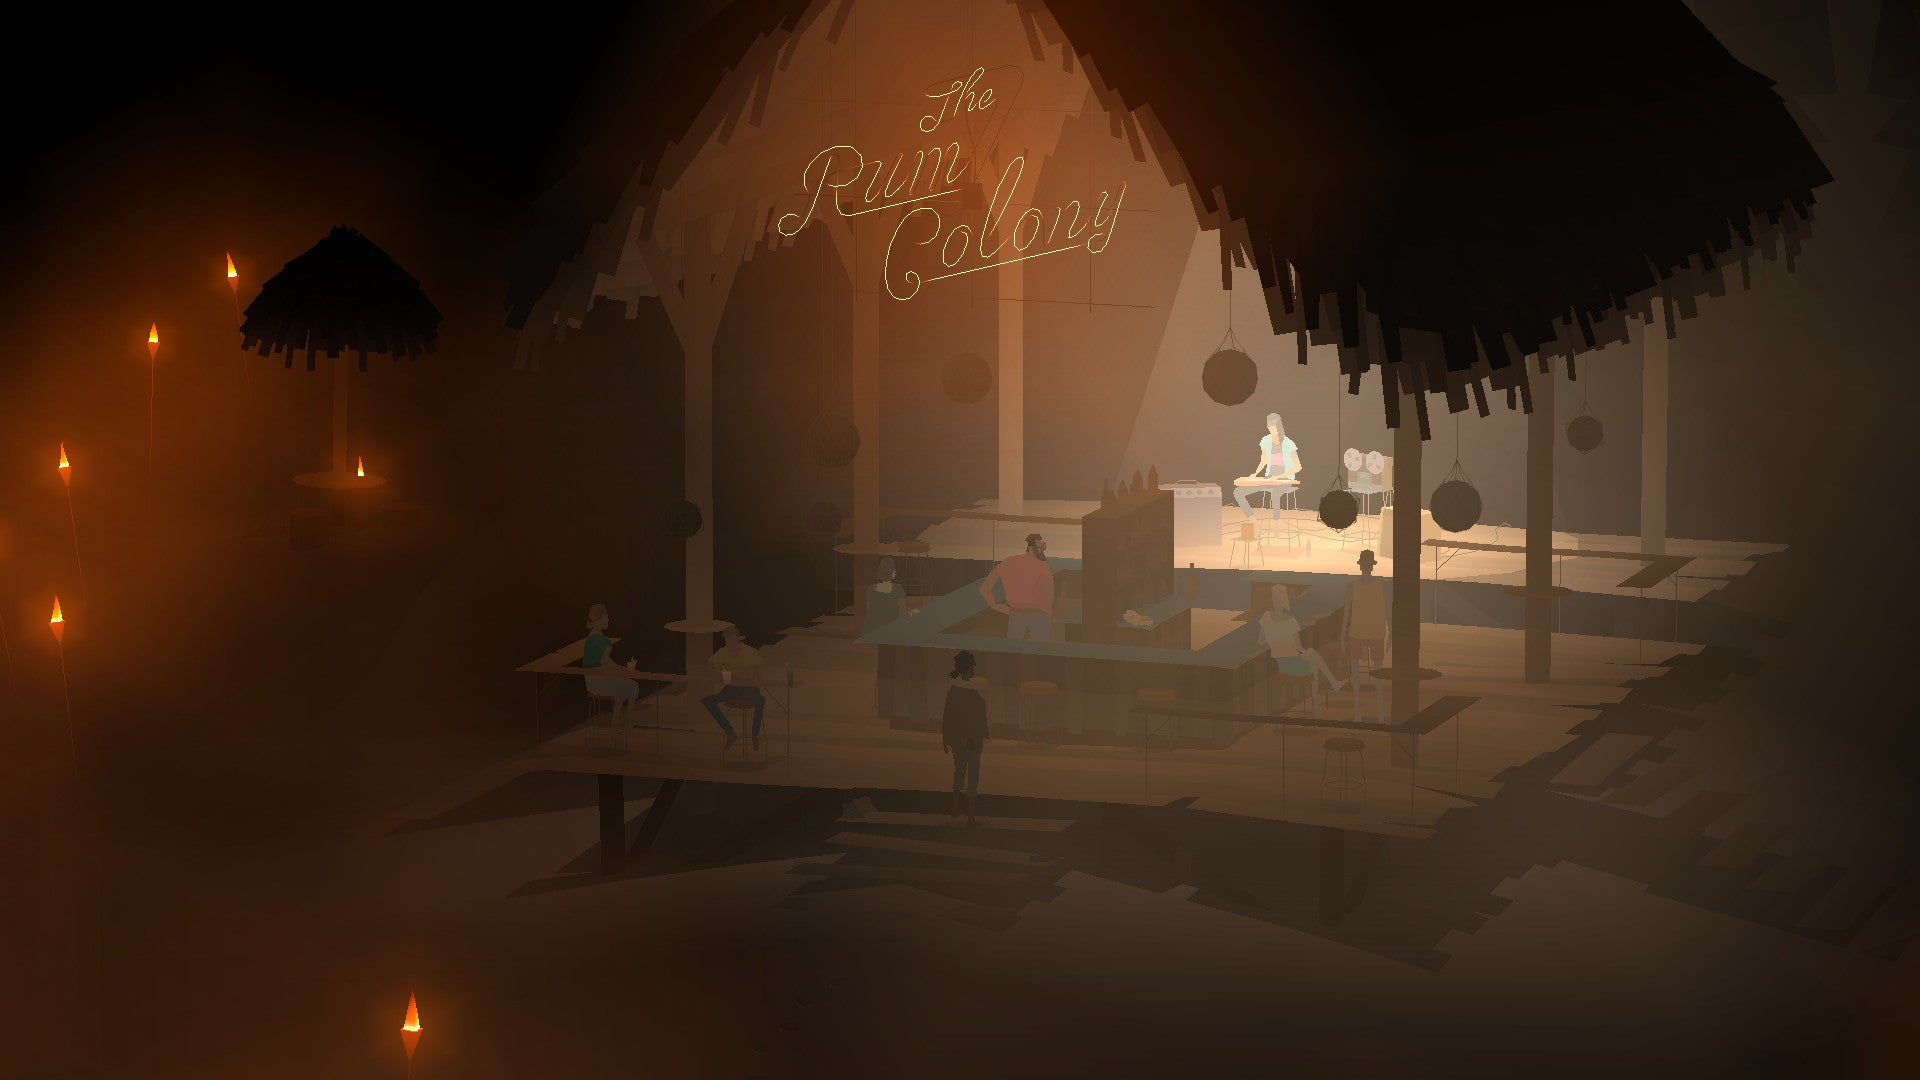 Kentucky Route Zero's 'Multiplayer' Isn't What You'd Expect, But It Fits